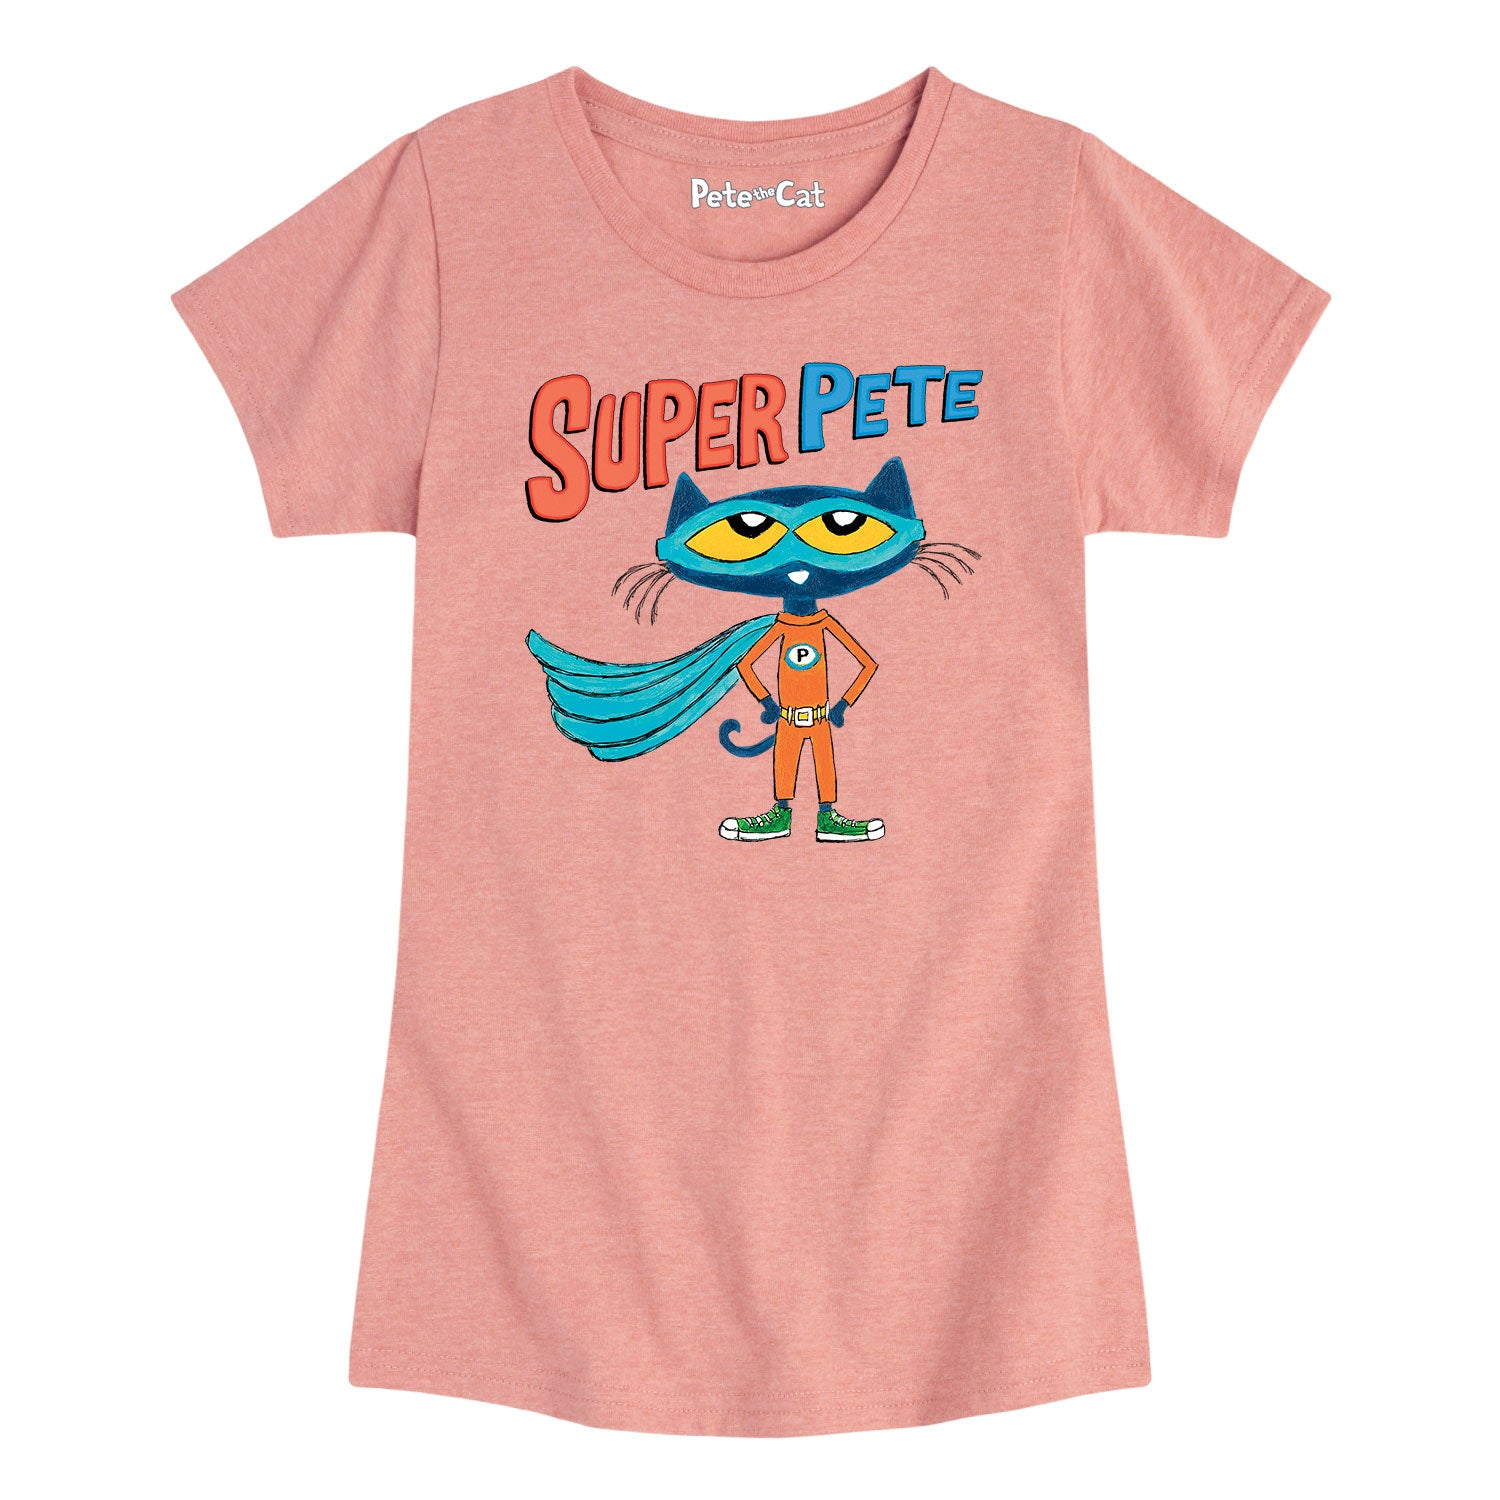 Super Pete With Cape - Youth & Toddler Girls Short Sleeve T-Shirt